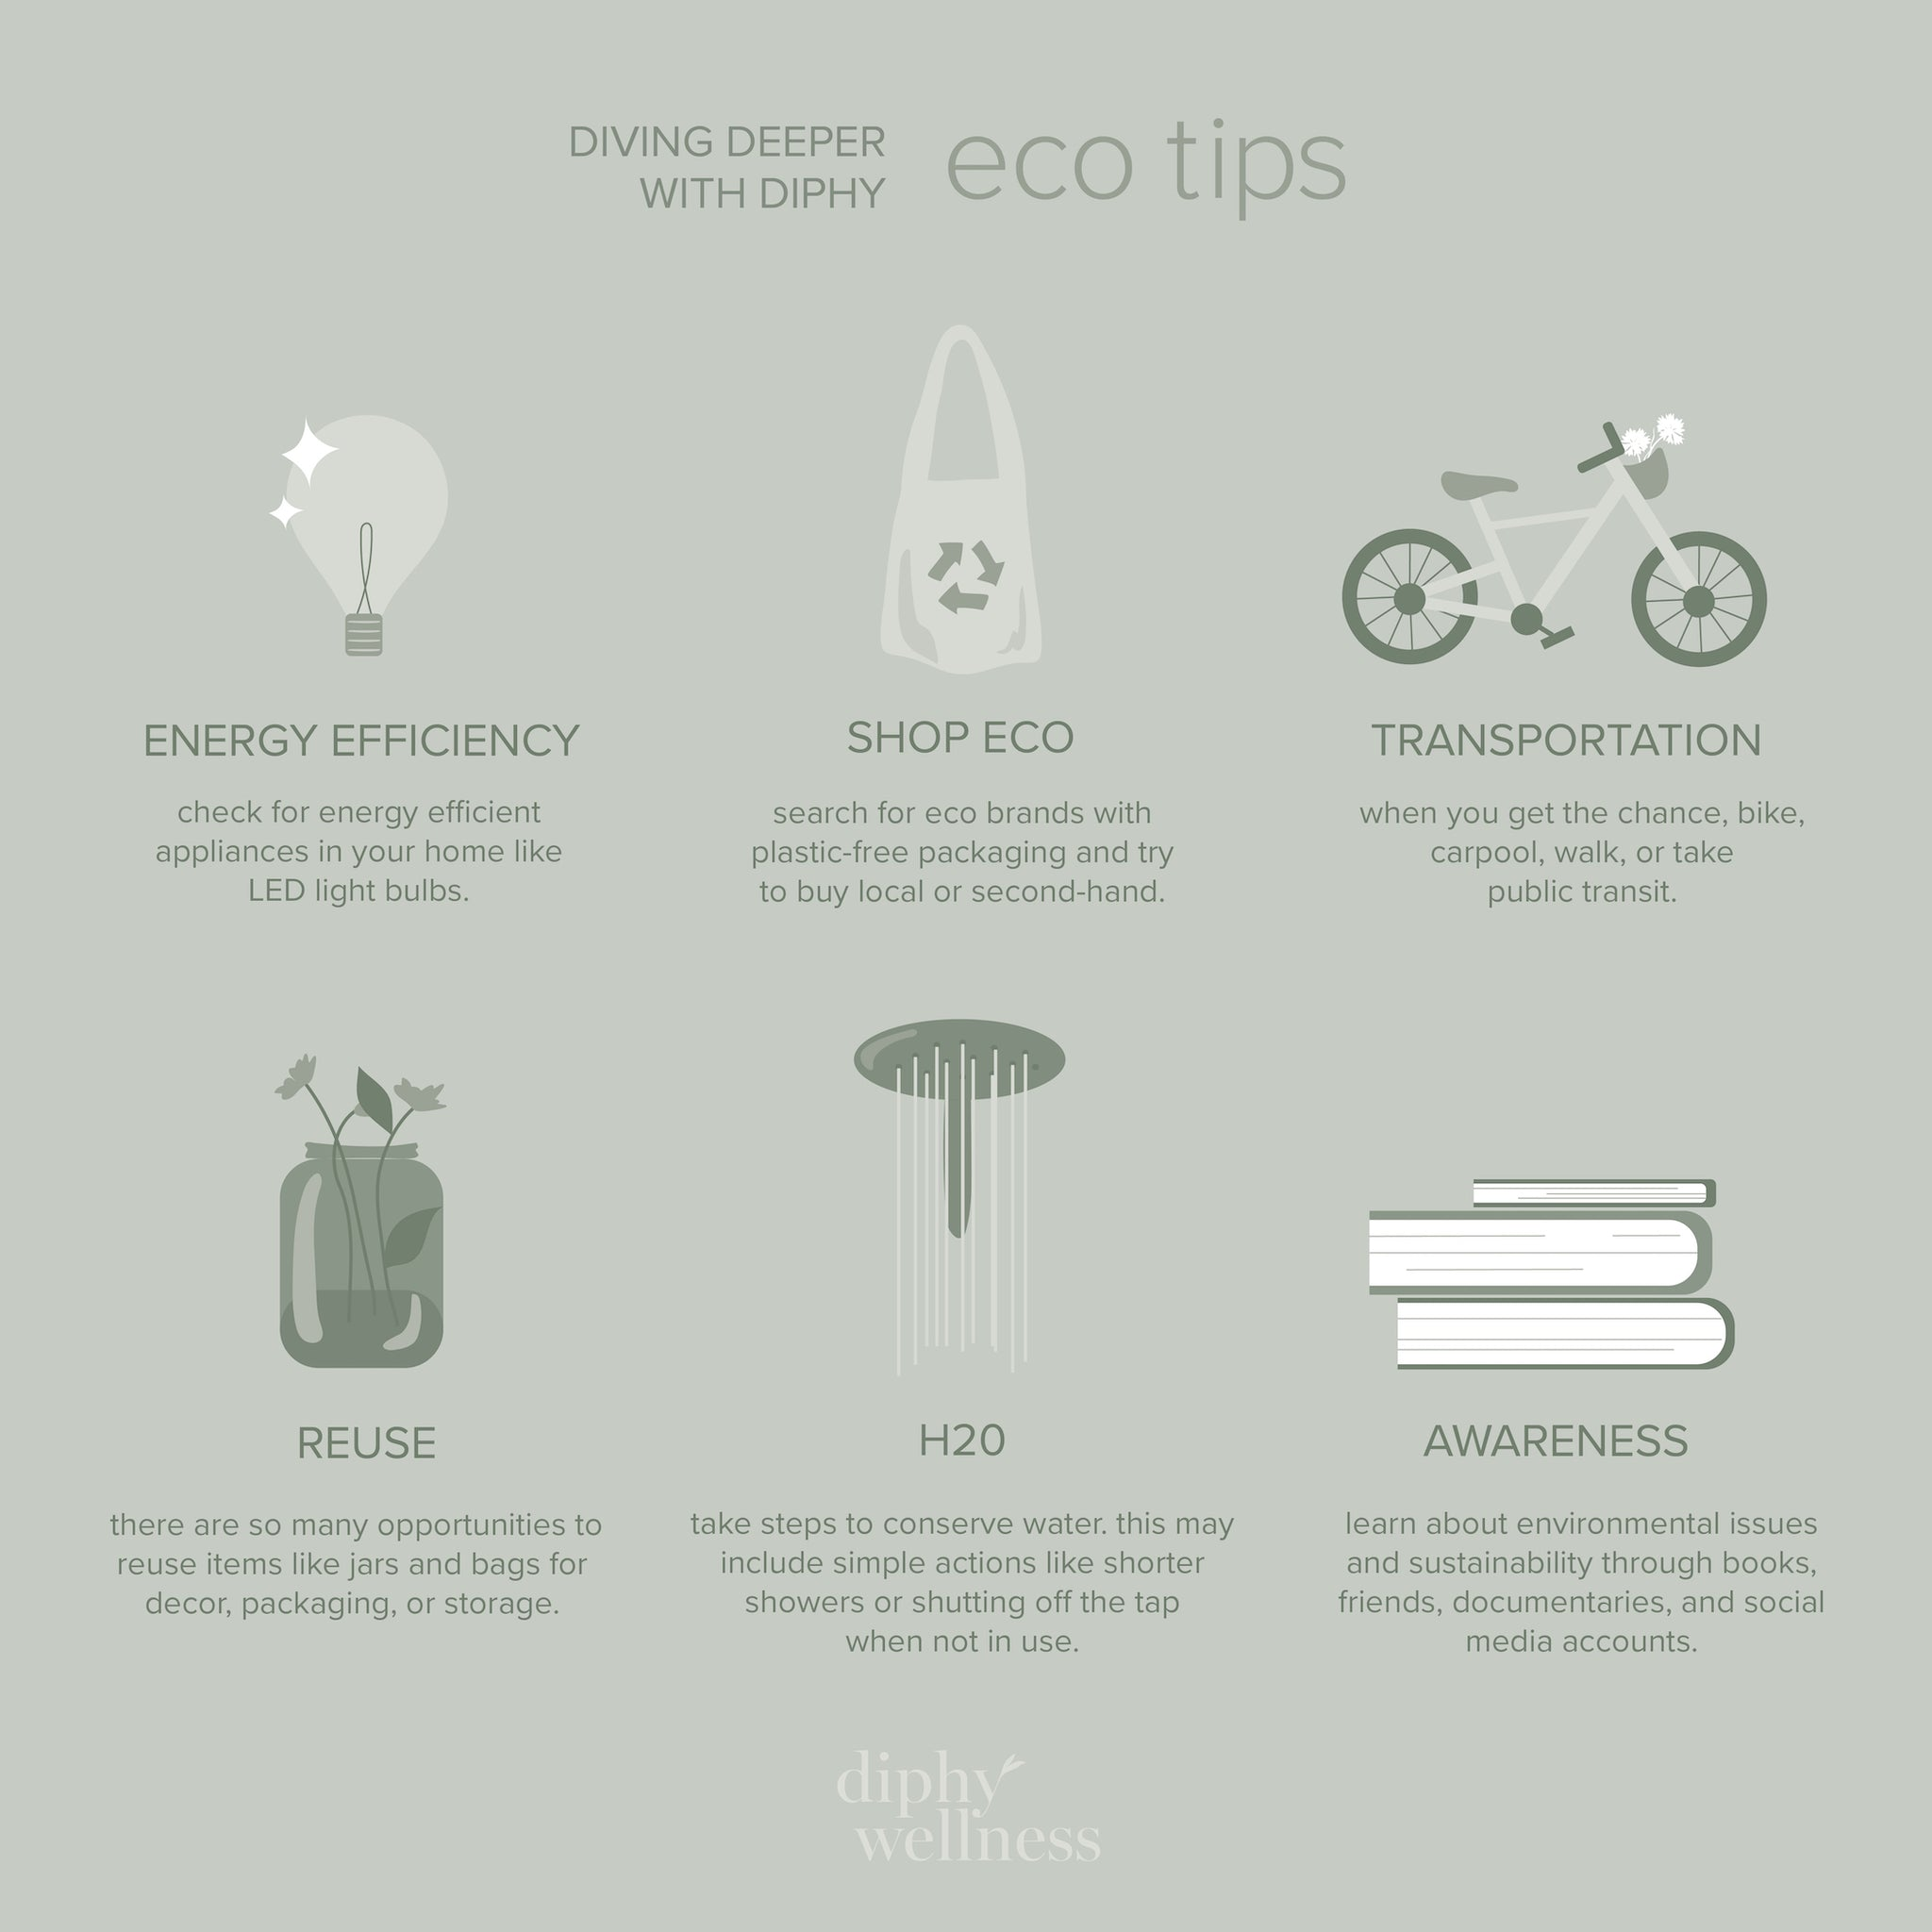 eco tips to be part of the positive impact on the environment. happy earth day